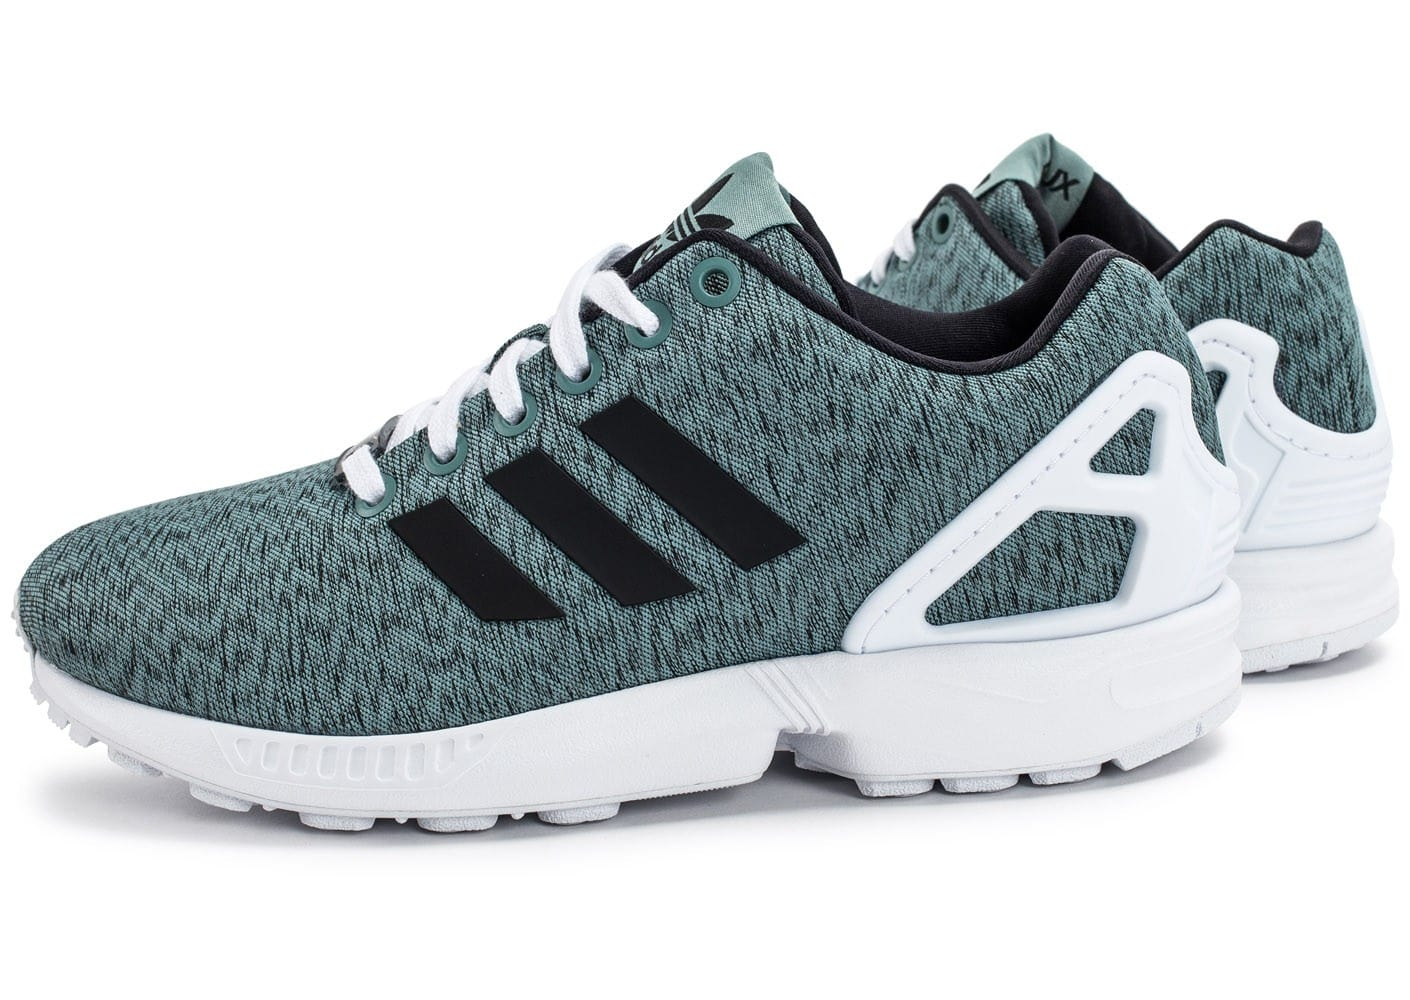 adidas torsion verte,Adidas ZX Flux Decon Torsion Camo